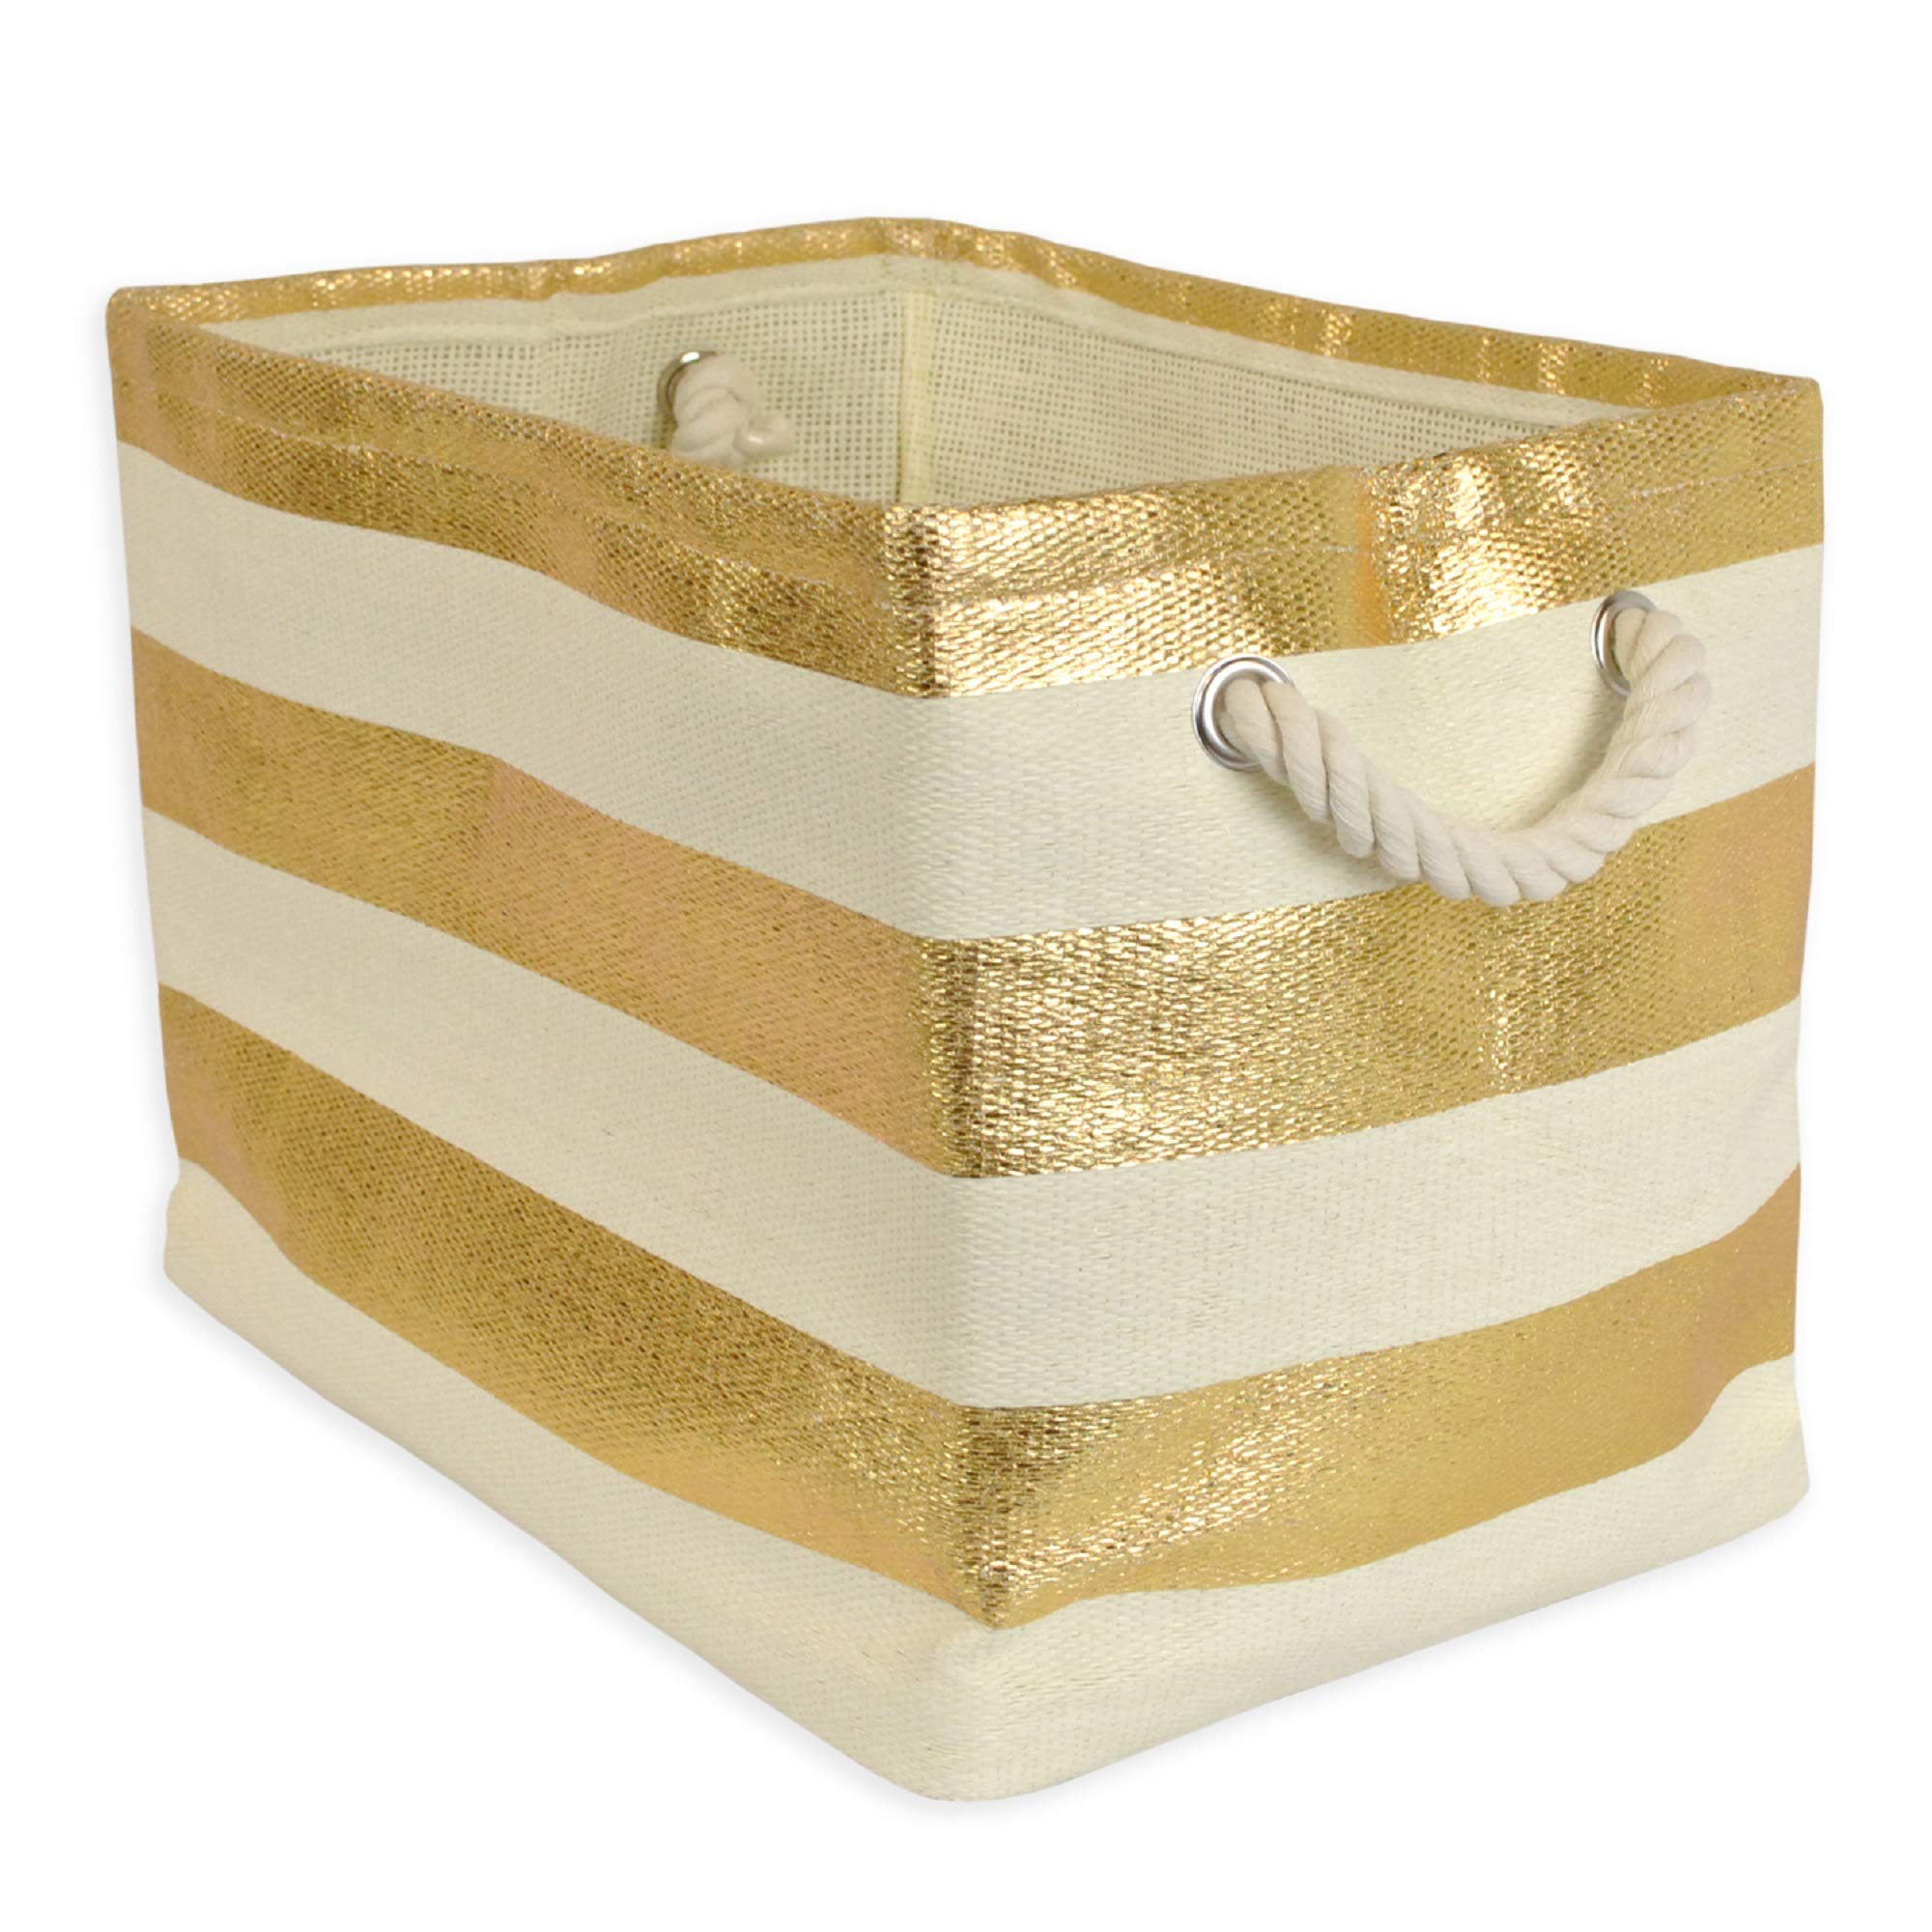 CC Home Furnishings 15'' Ivory White and Golden Colored Striped Patterned Large Sized Rectangular Paper Basket by CC Home Furnishings